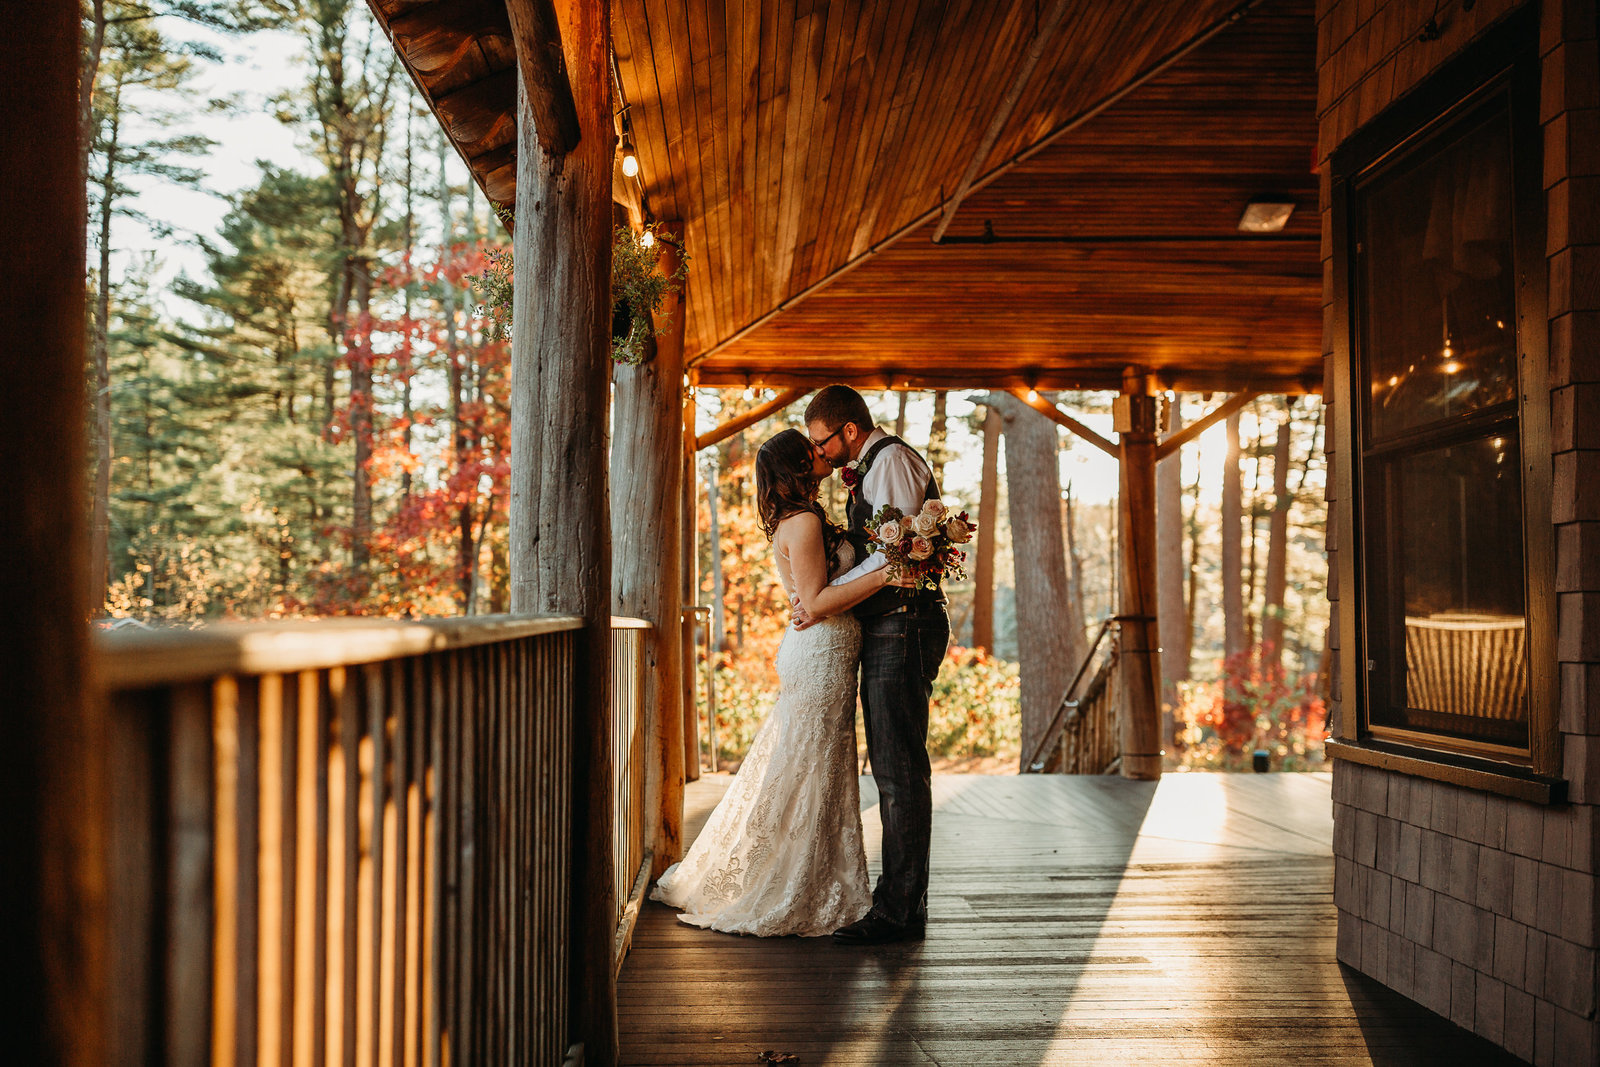 bride and groom kiss in golden light on outdoor porch